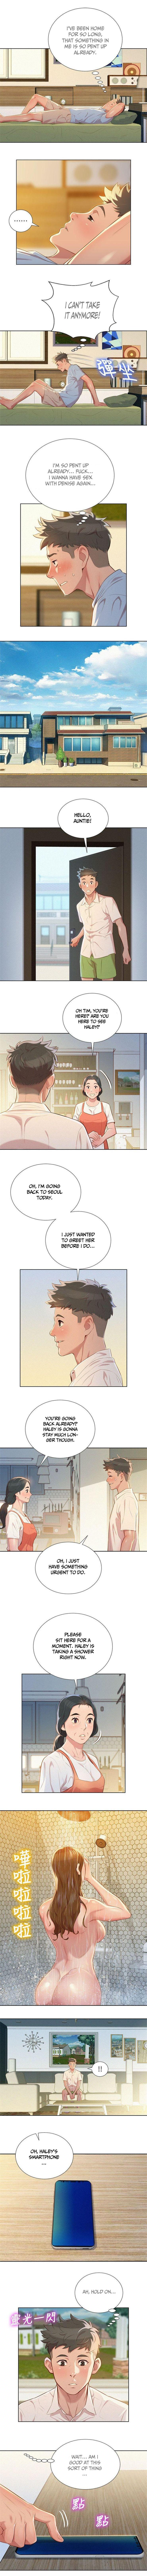 What do you Take me For? Ch.40/? 328